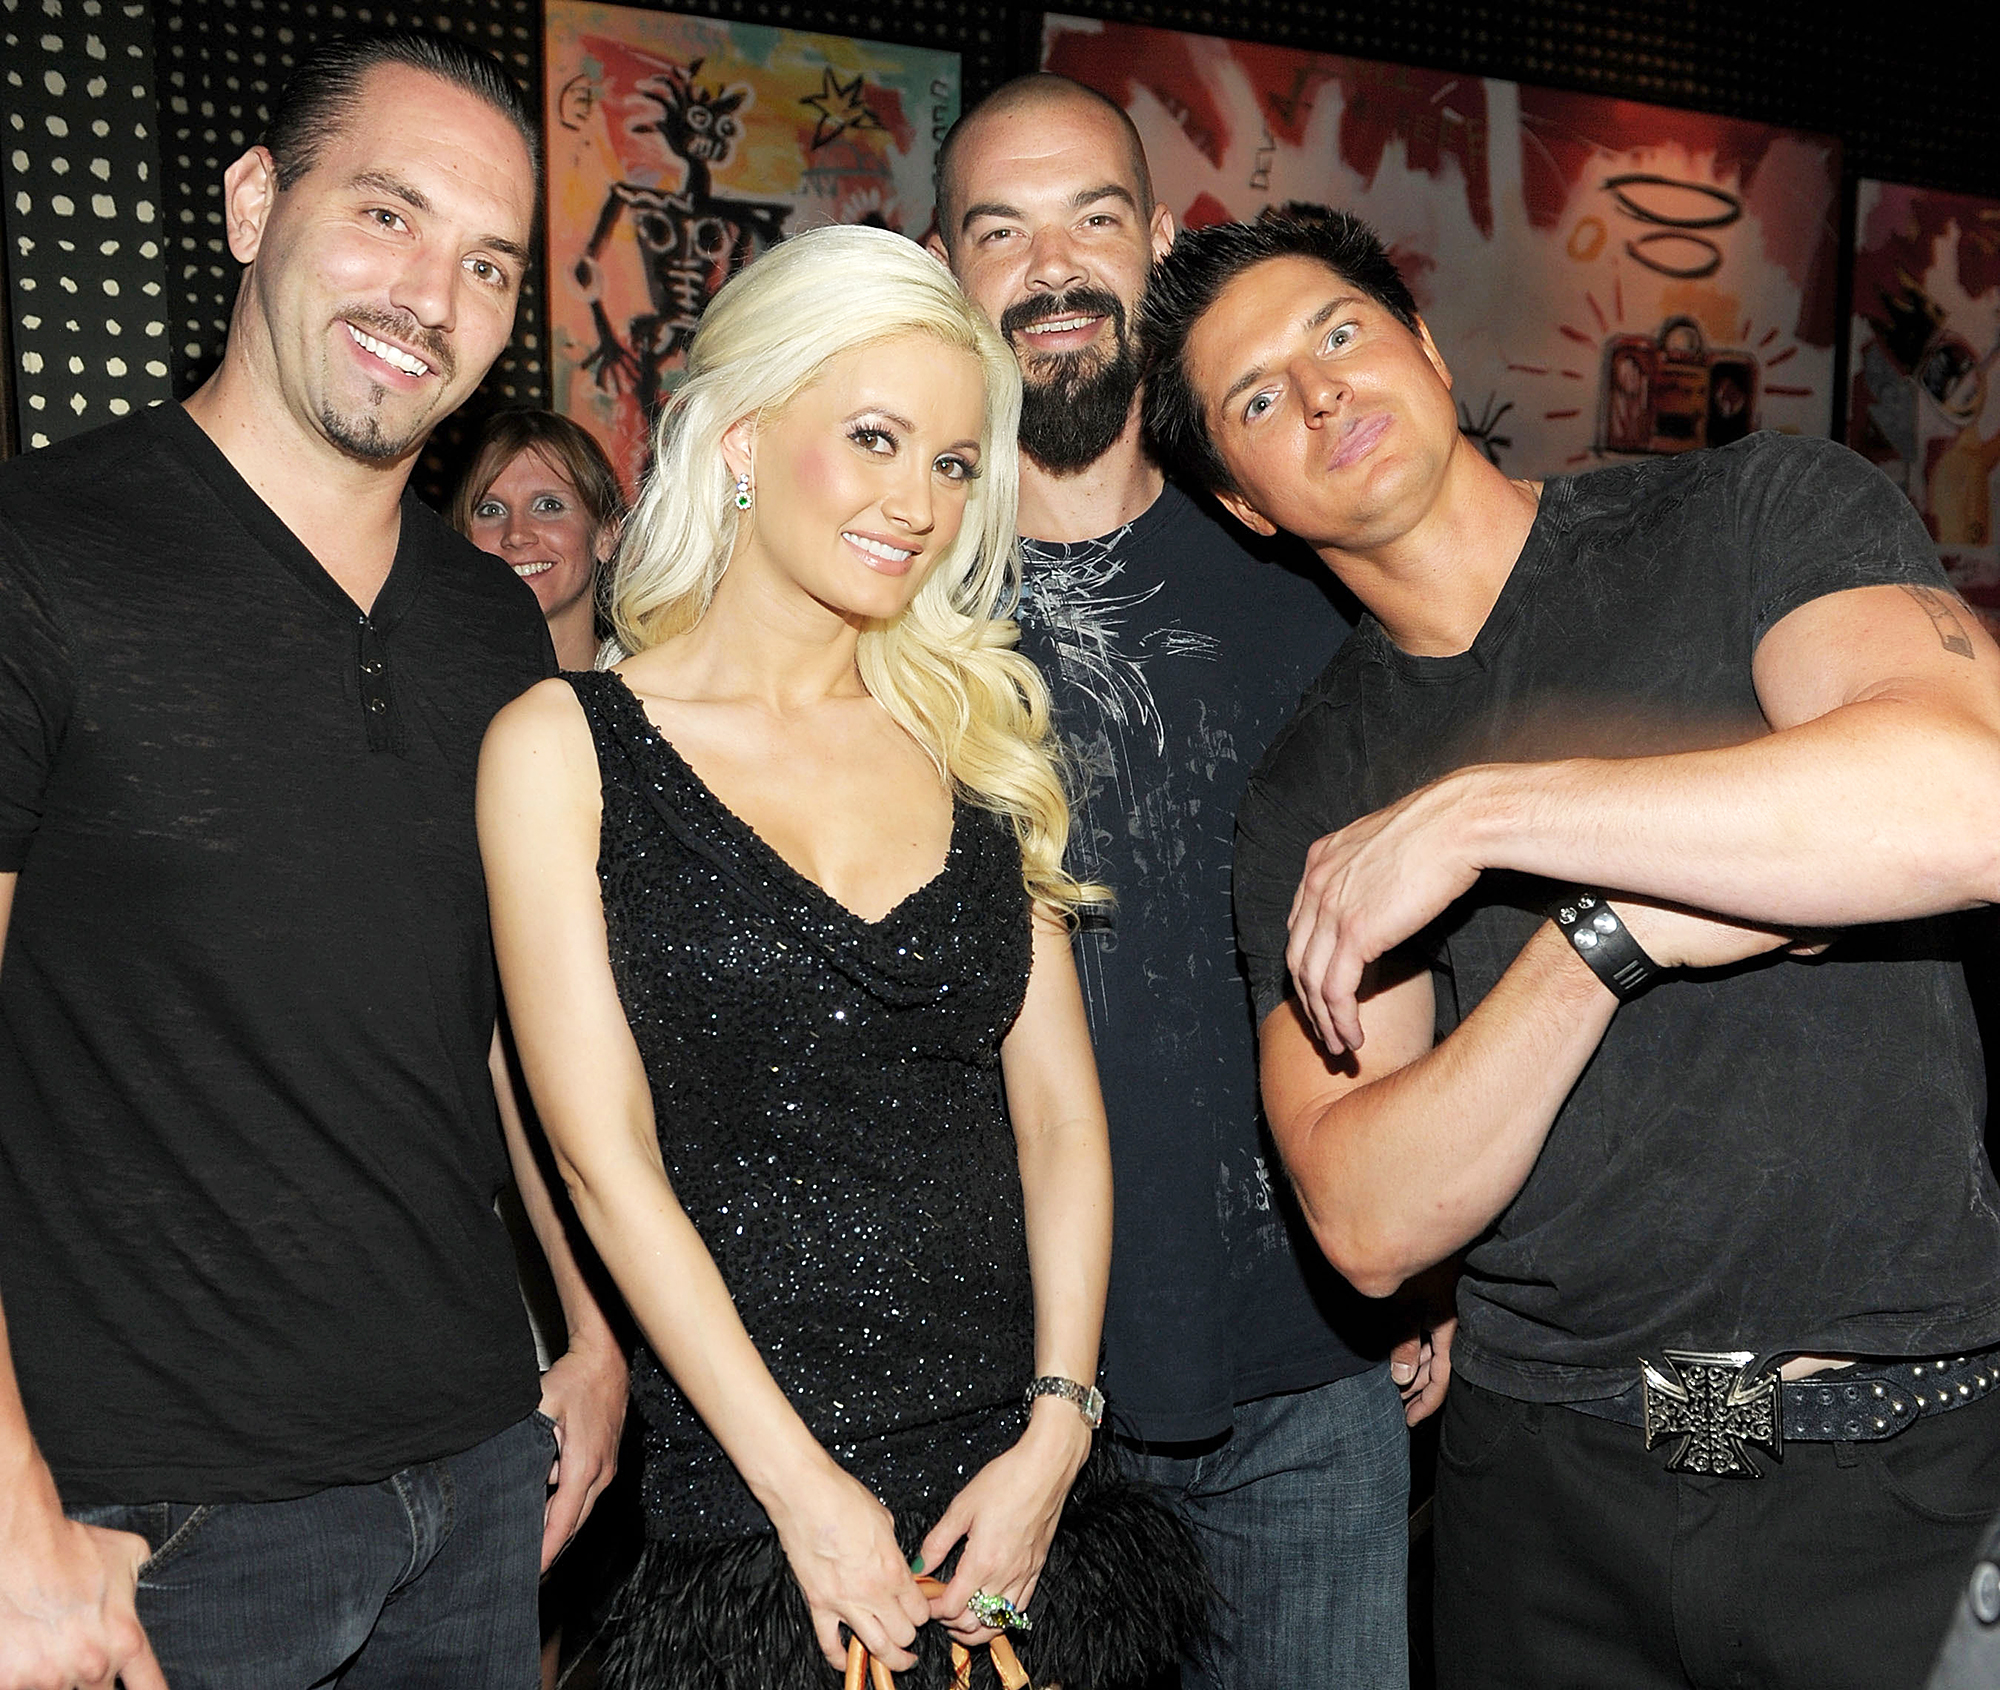 Nick Groff Holly Madison Aaron Goodwin and Zak Bagans celebrate the 4th anniversary of Blush Boutique Nightclub at Wynn Las Vegas in 2011